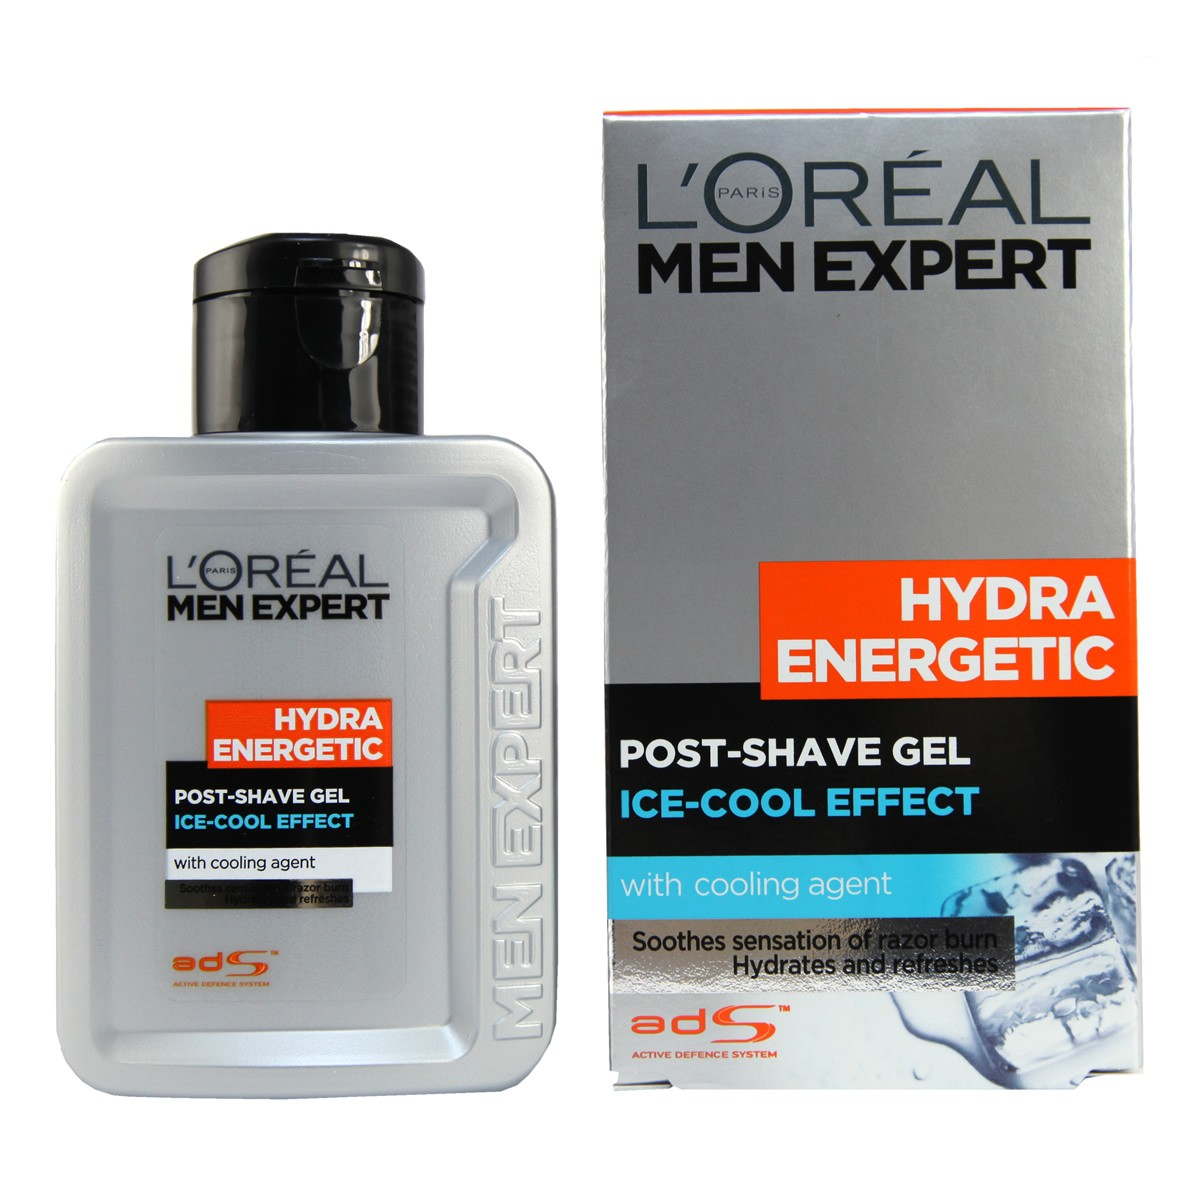 L'Oreal Paris Men Expert Hydra Energetic Post-Shave Gel Ice-Cool Effect